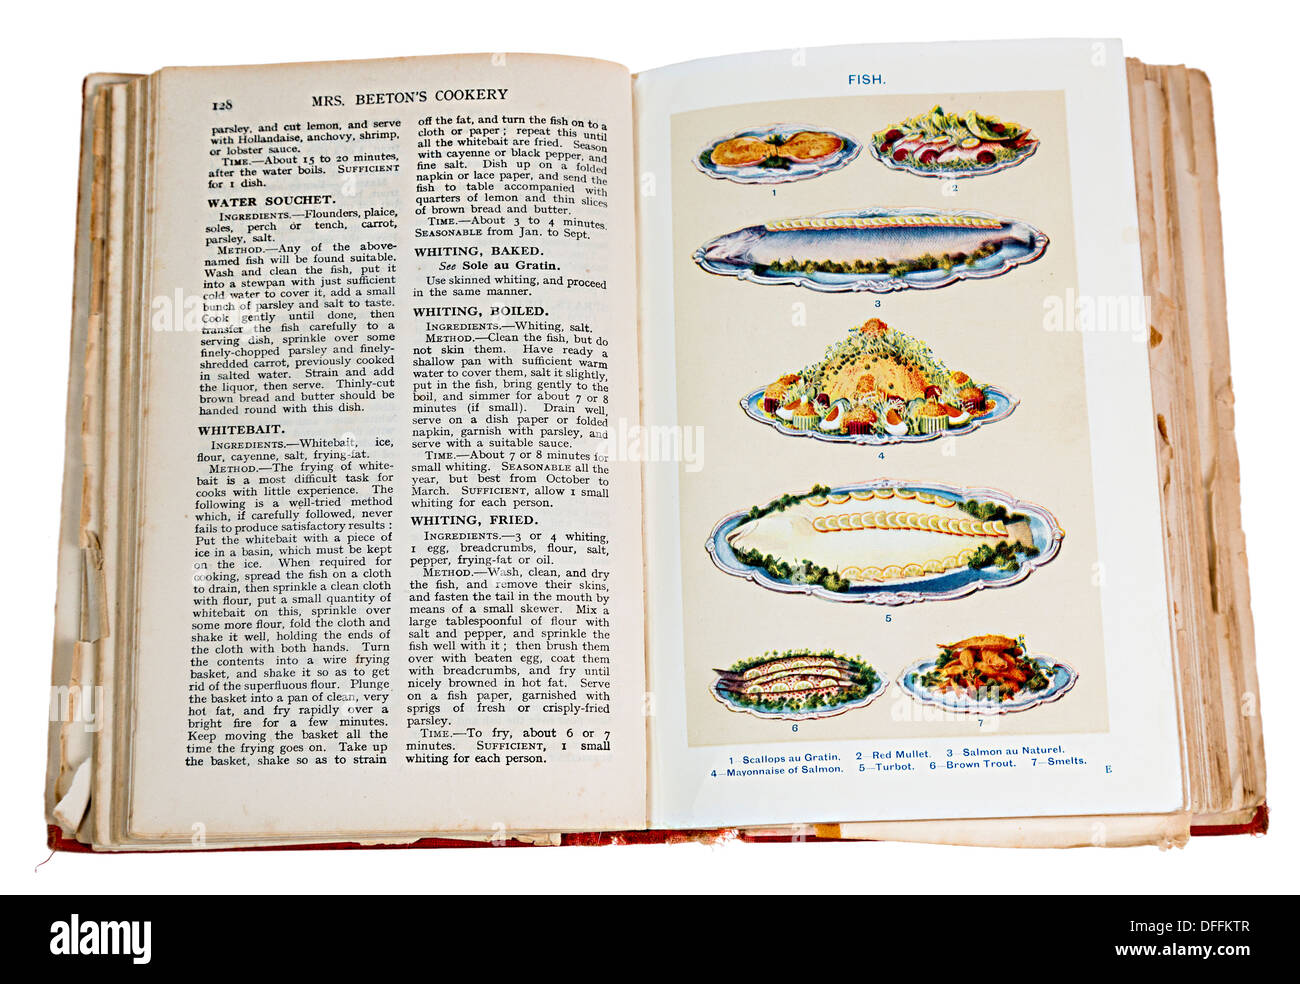 Mrs Beaton's Cookery Book 1923 edition showing open book and plates of prepared fish dishes - Stock Image